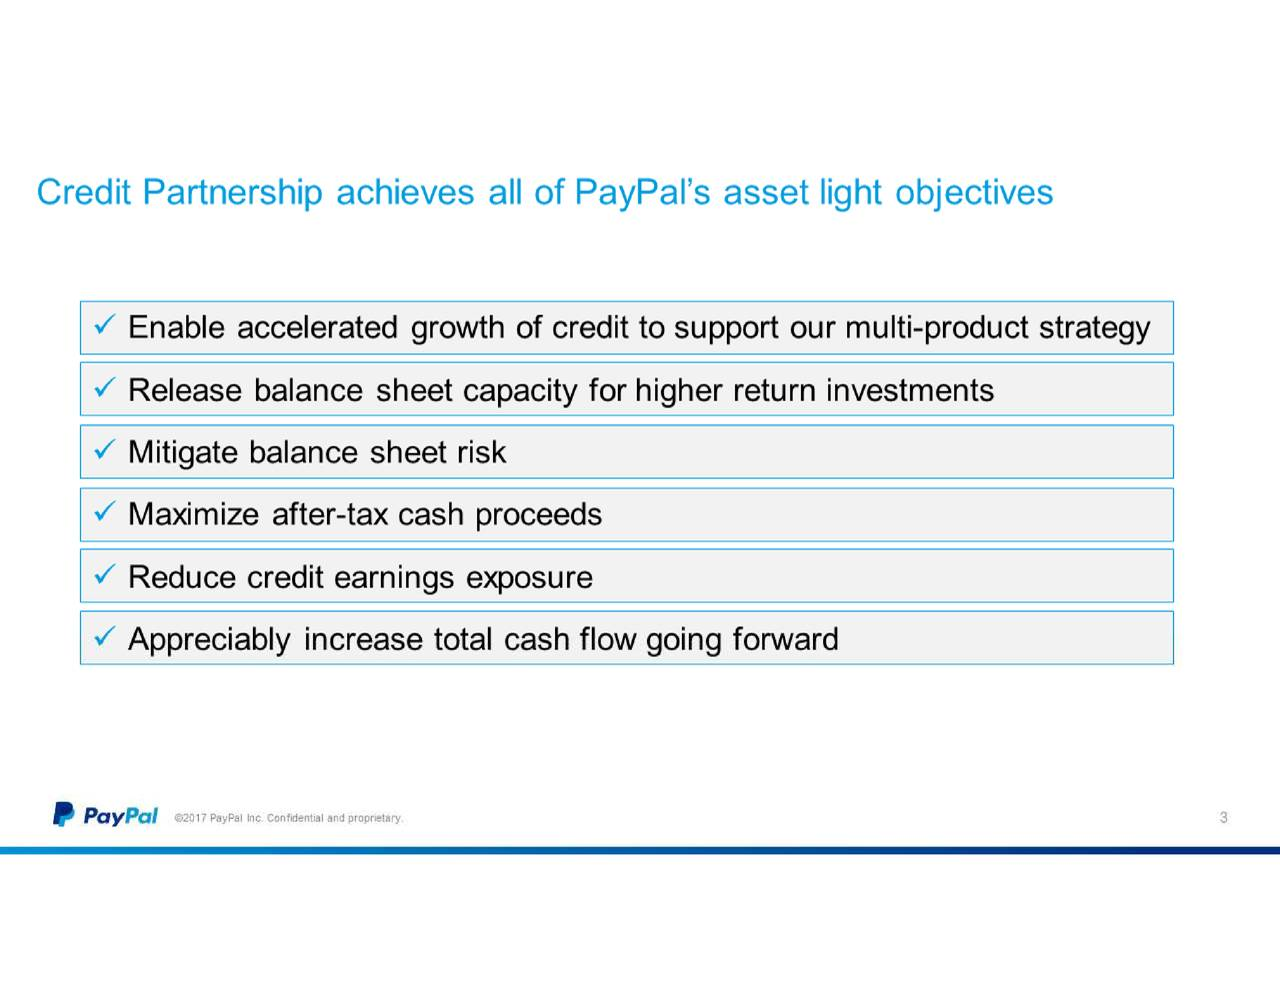 Pypl Quote Paypal Pypl Sells Cosumer Credit Portfolio To Synchrony